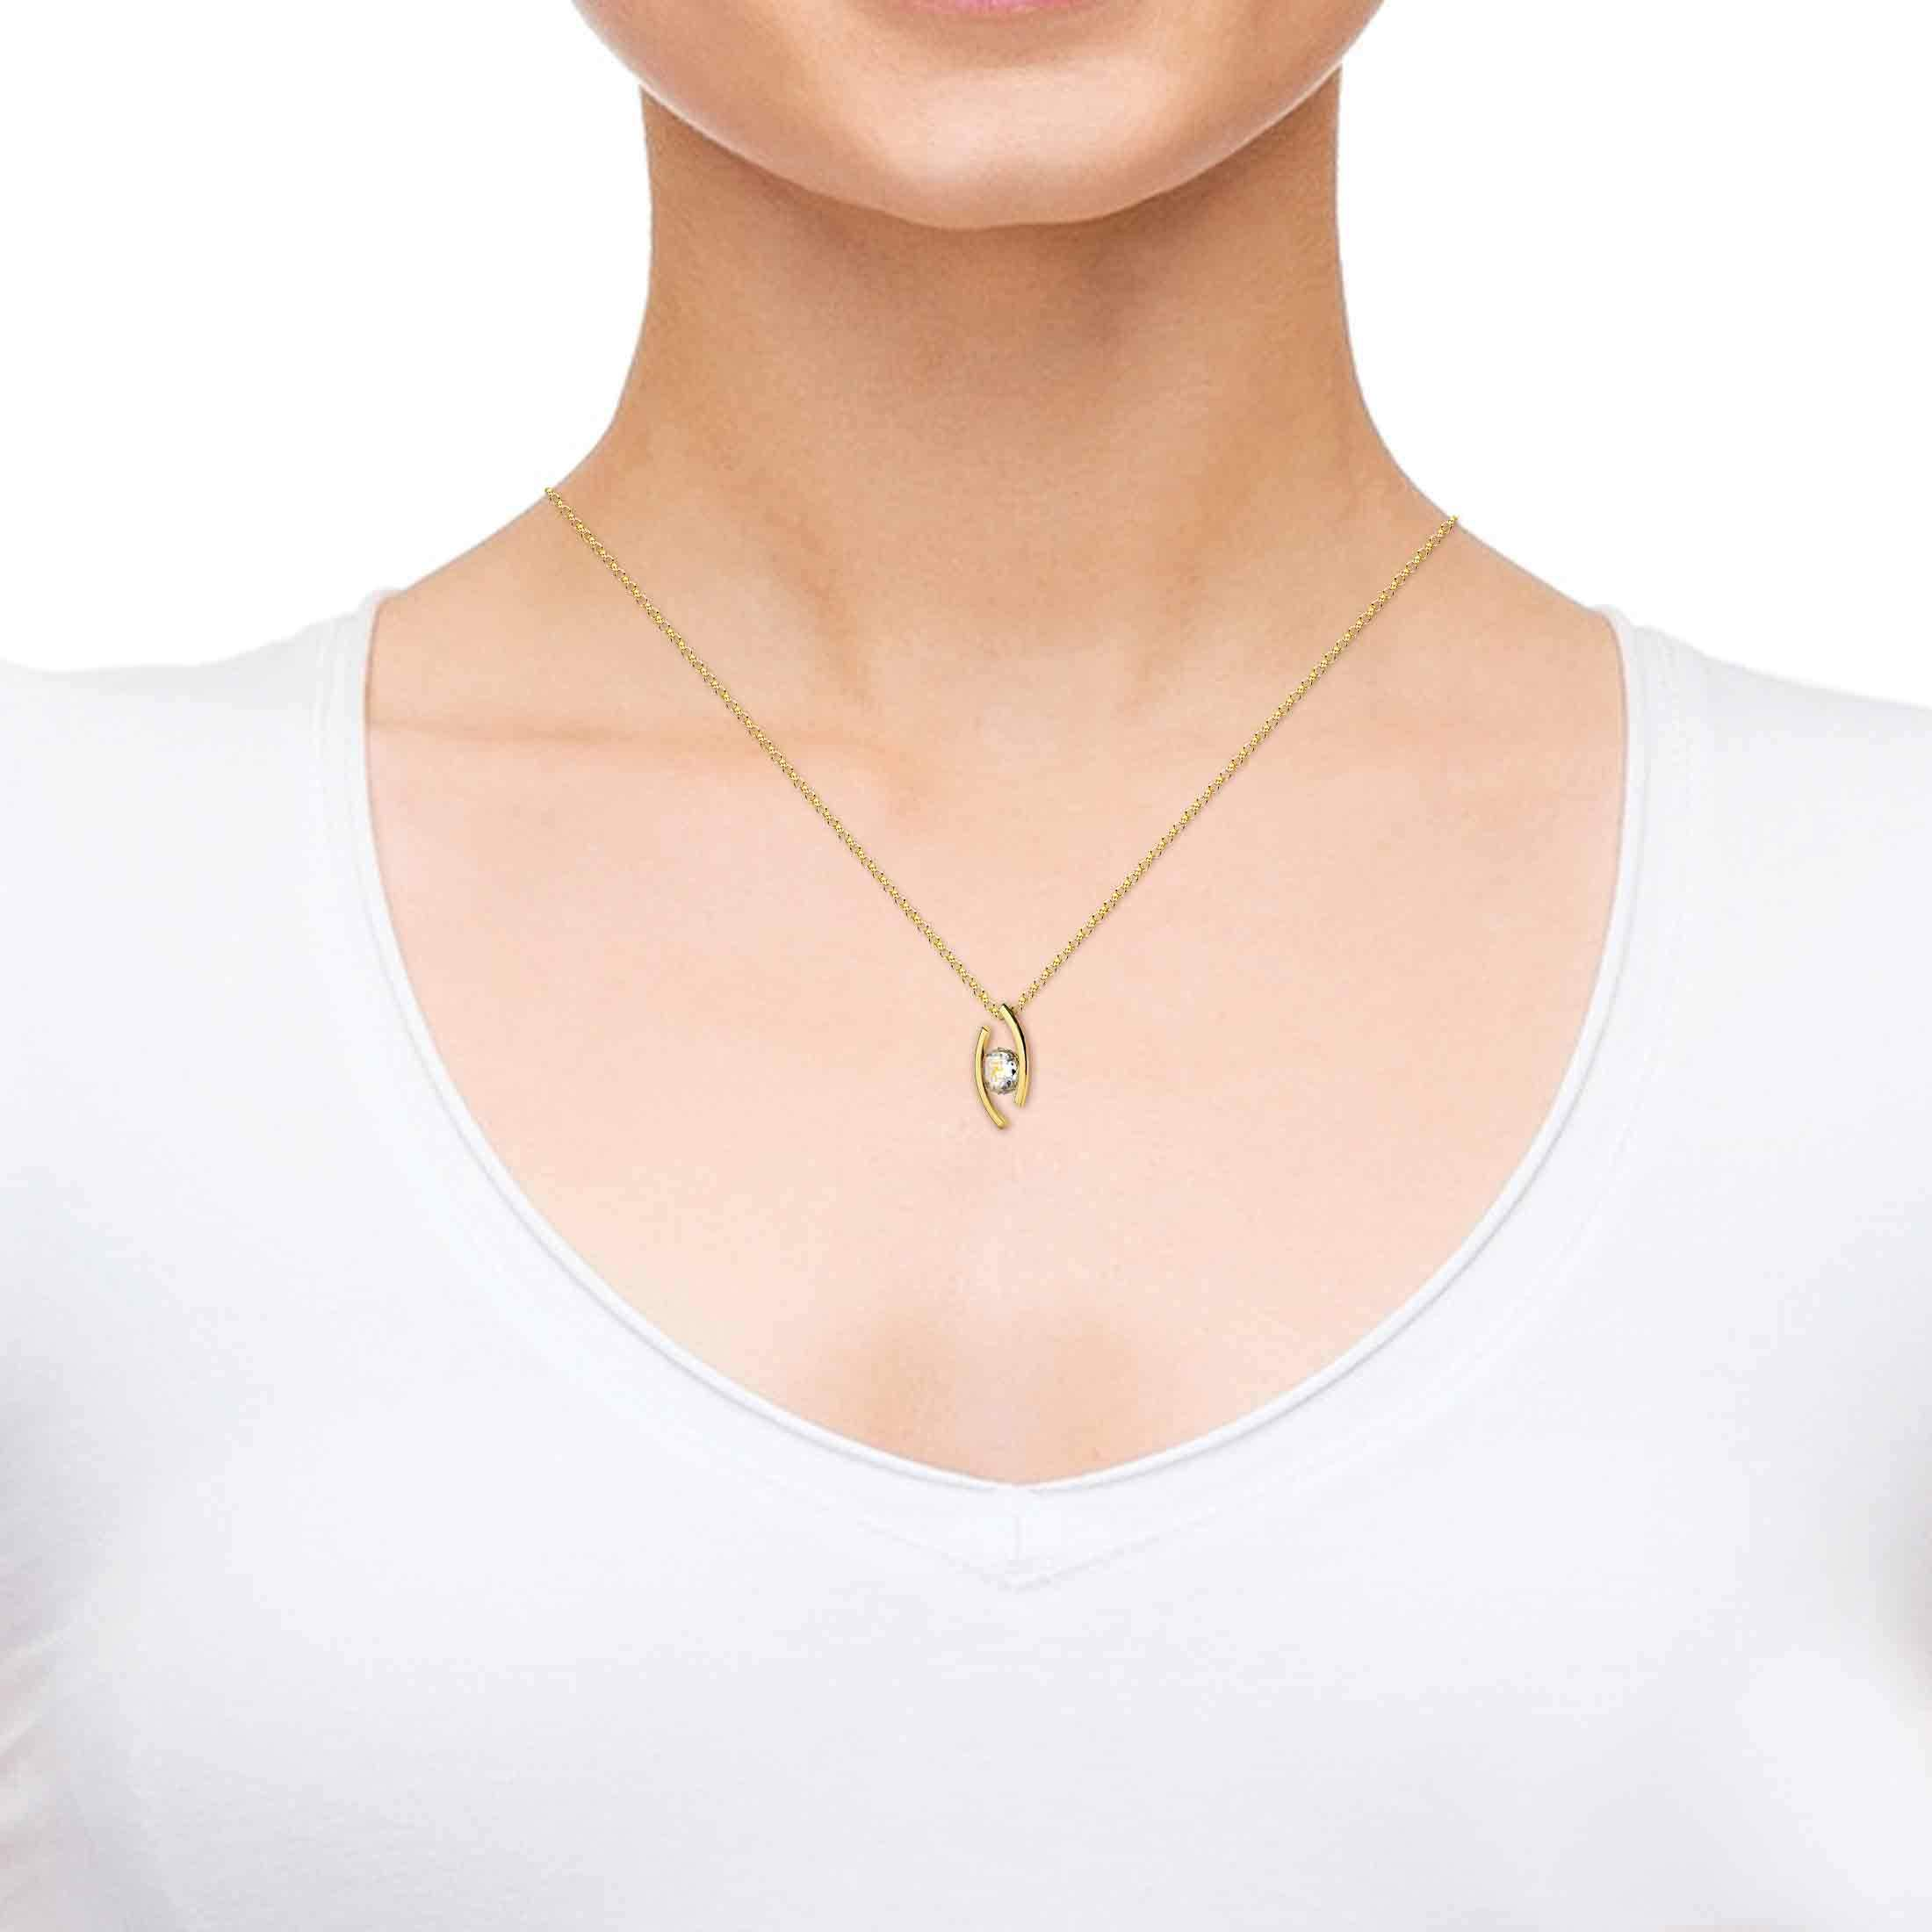 Sagittarius 14k Gold Necklace, Nano Jewelry